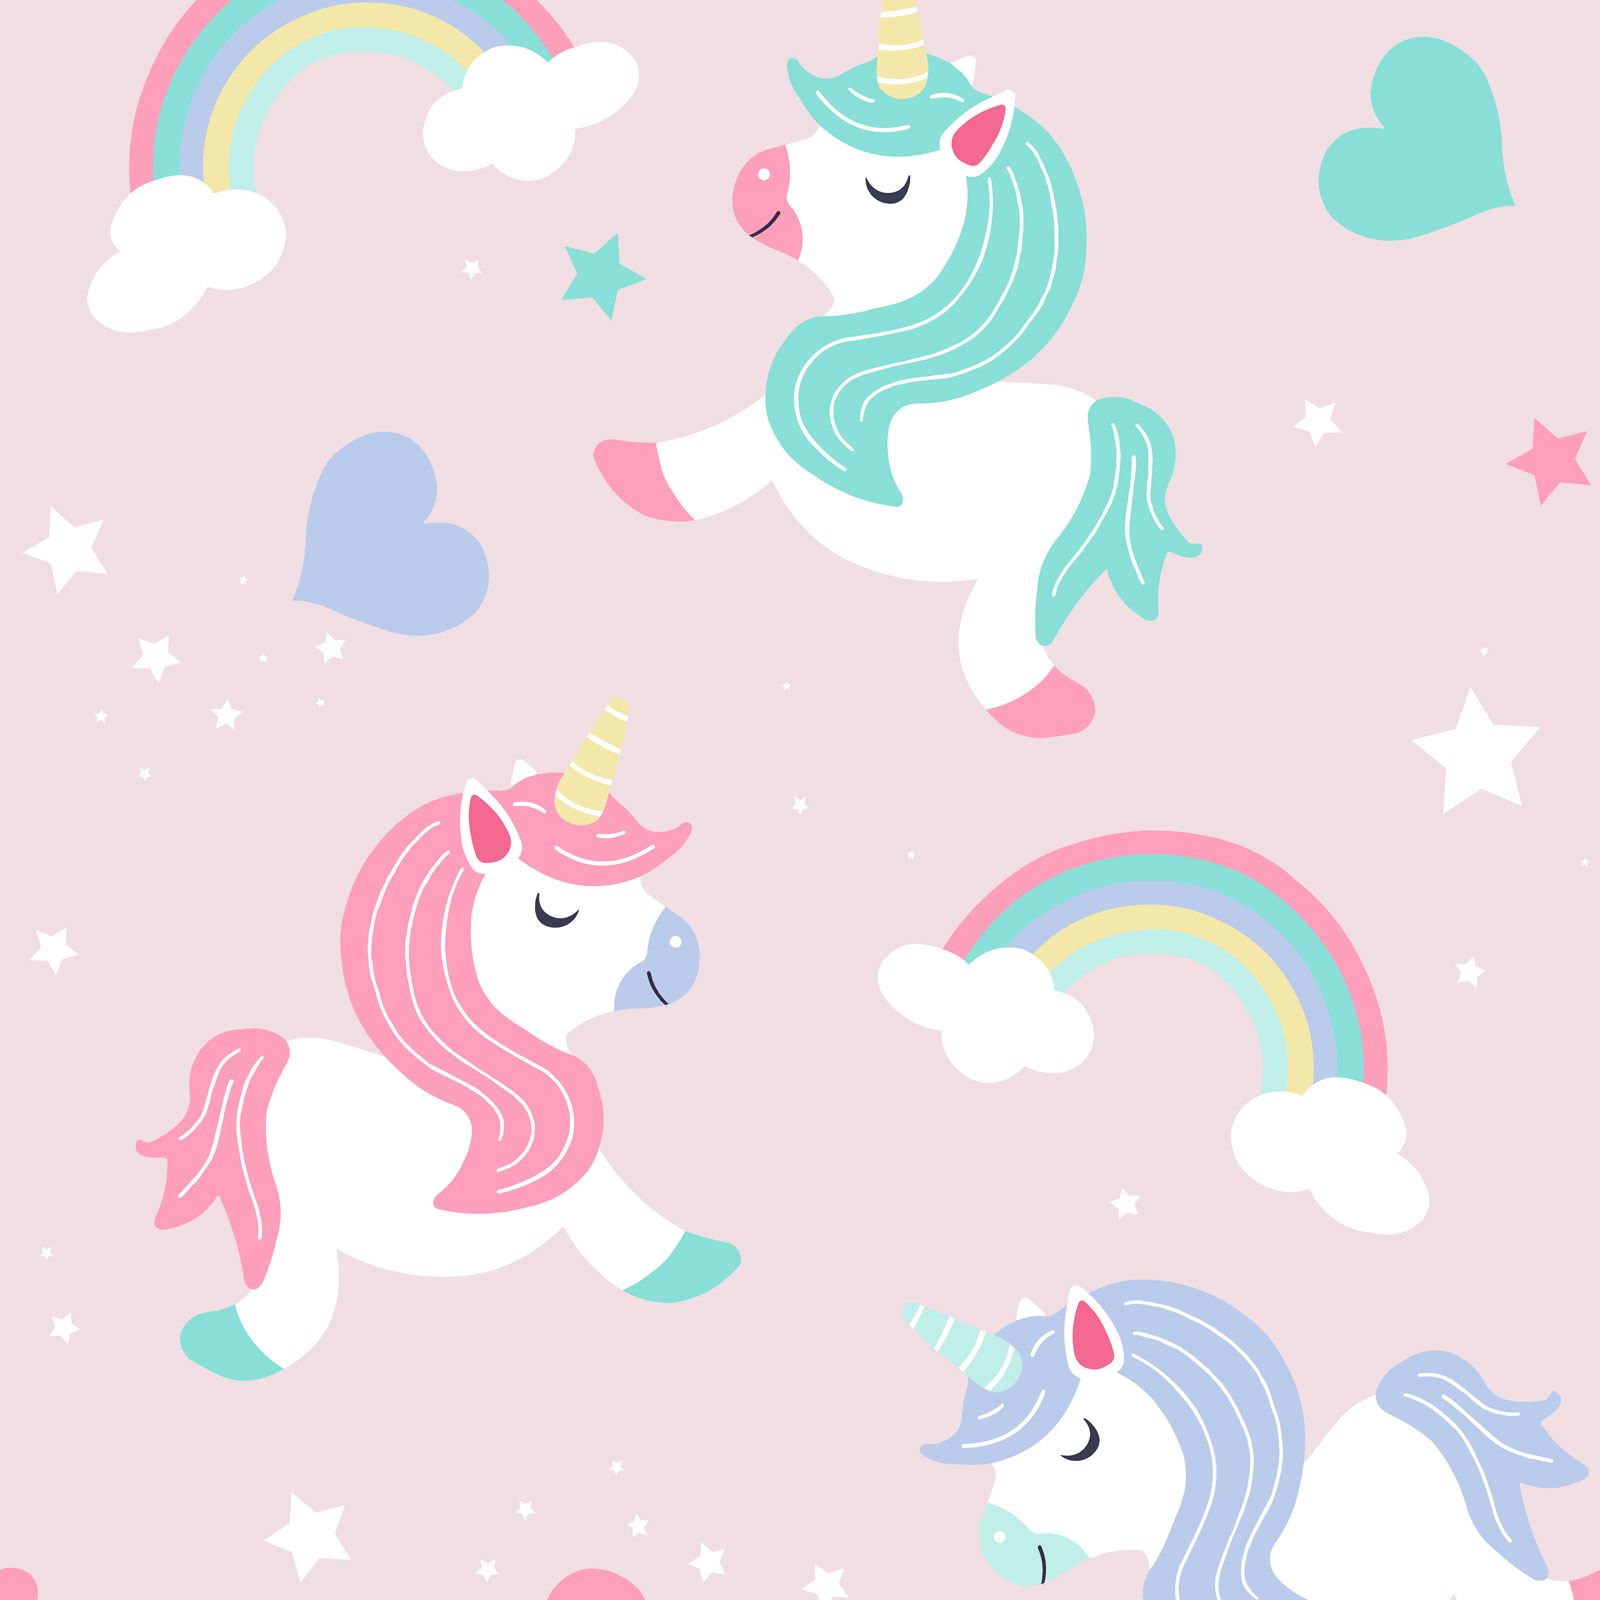 Details about World of Wallpaper Believe in Unicorns wallpaper Pink A365 CAO 1